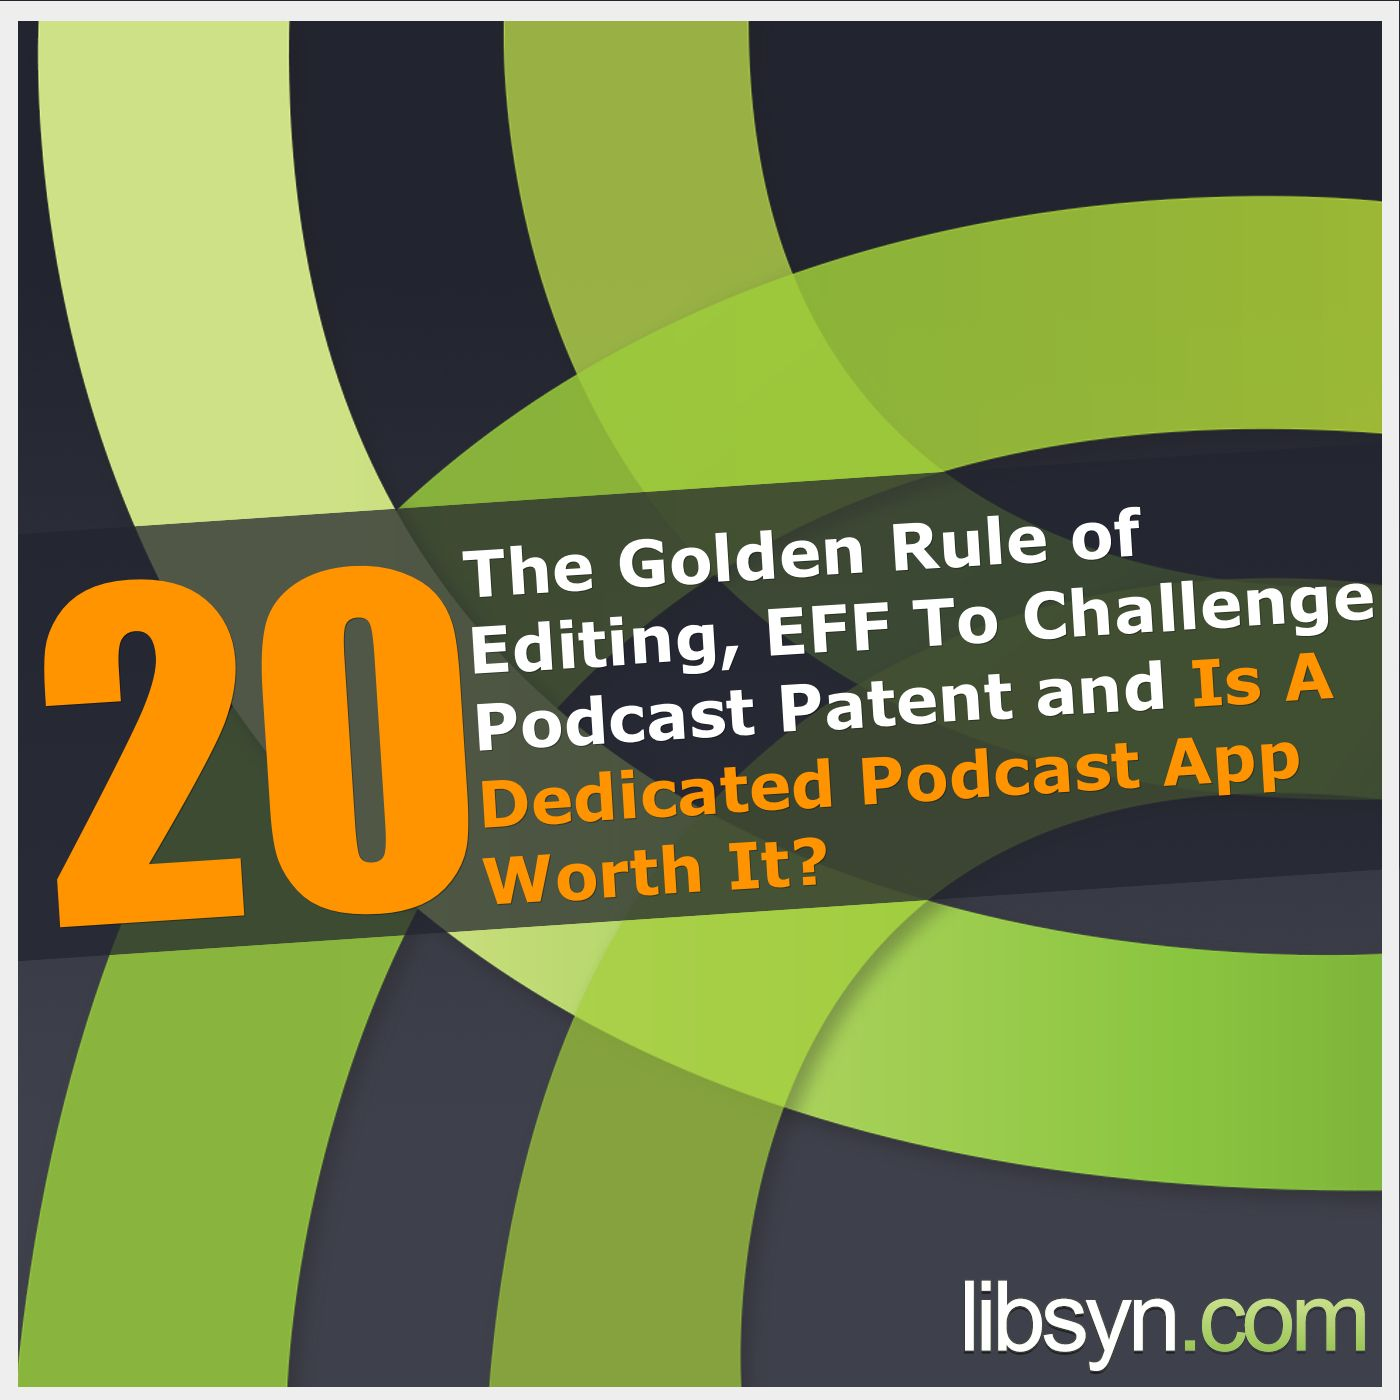 020 The Golden Rule of Editing, EFF To Challenge Podcast